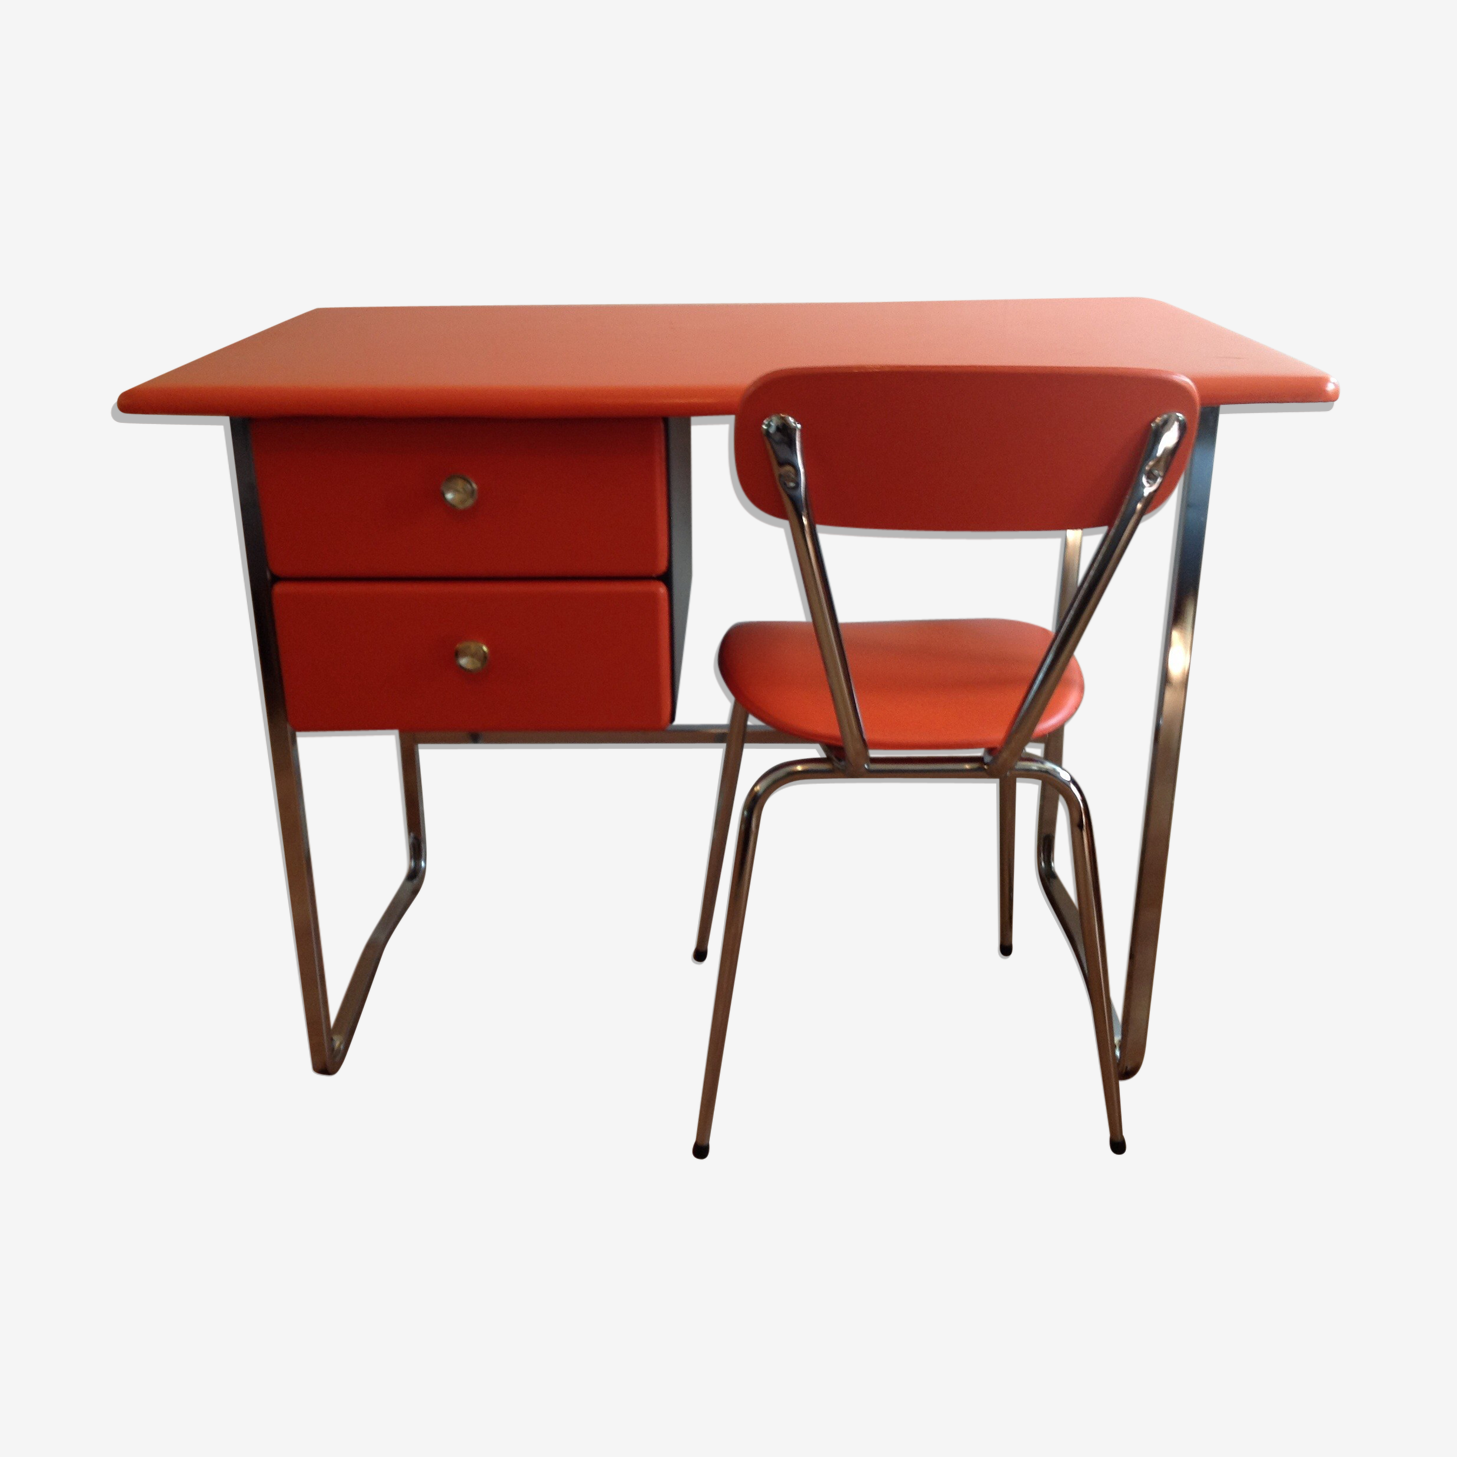 Bureau orange pop skaï et chrome avec sa chaise vintage